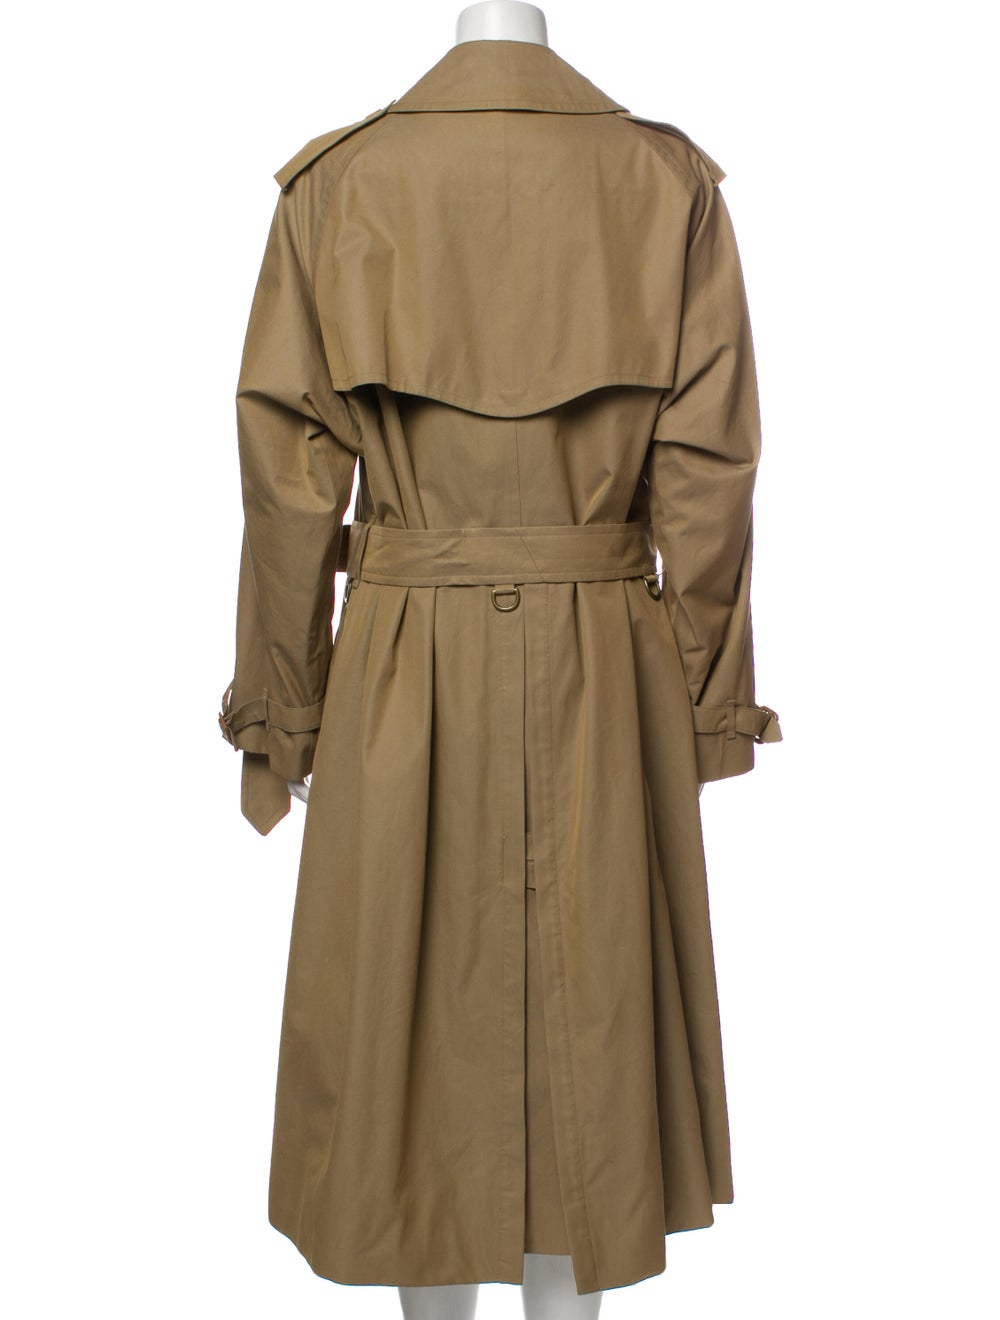 Burberry Vintage Trench Coat - image 3